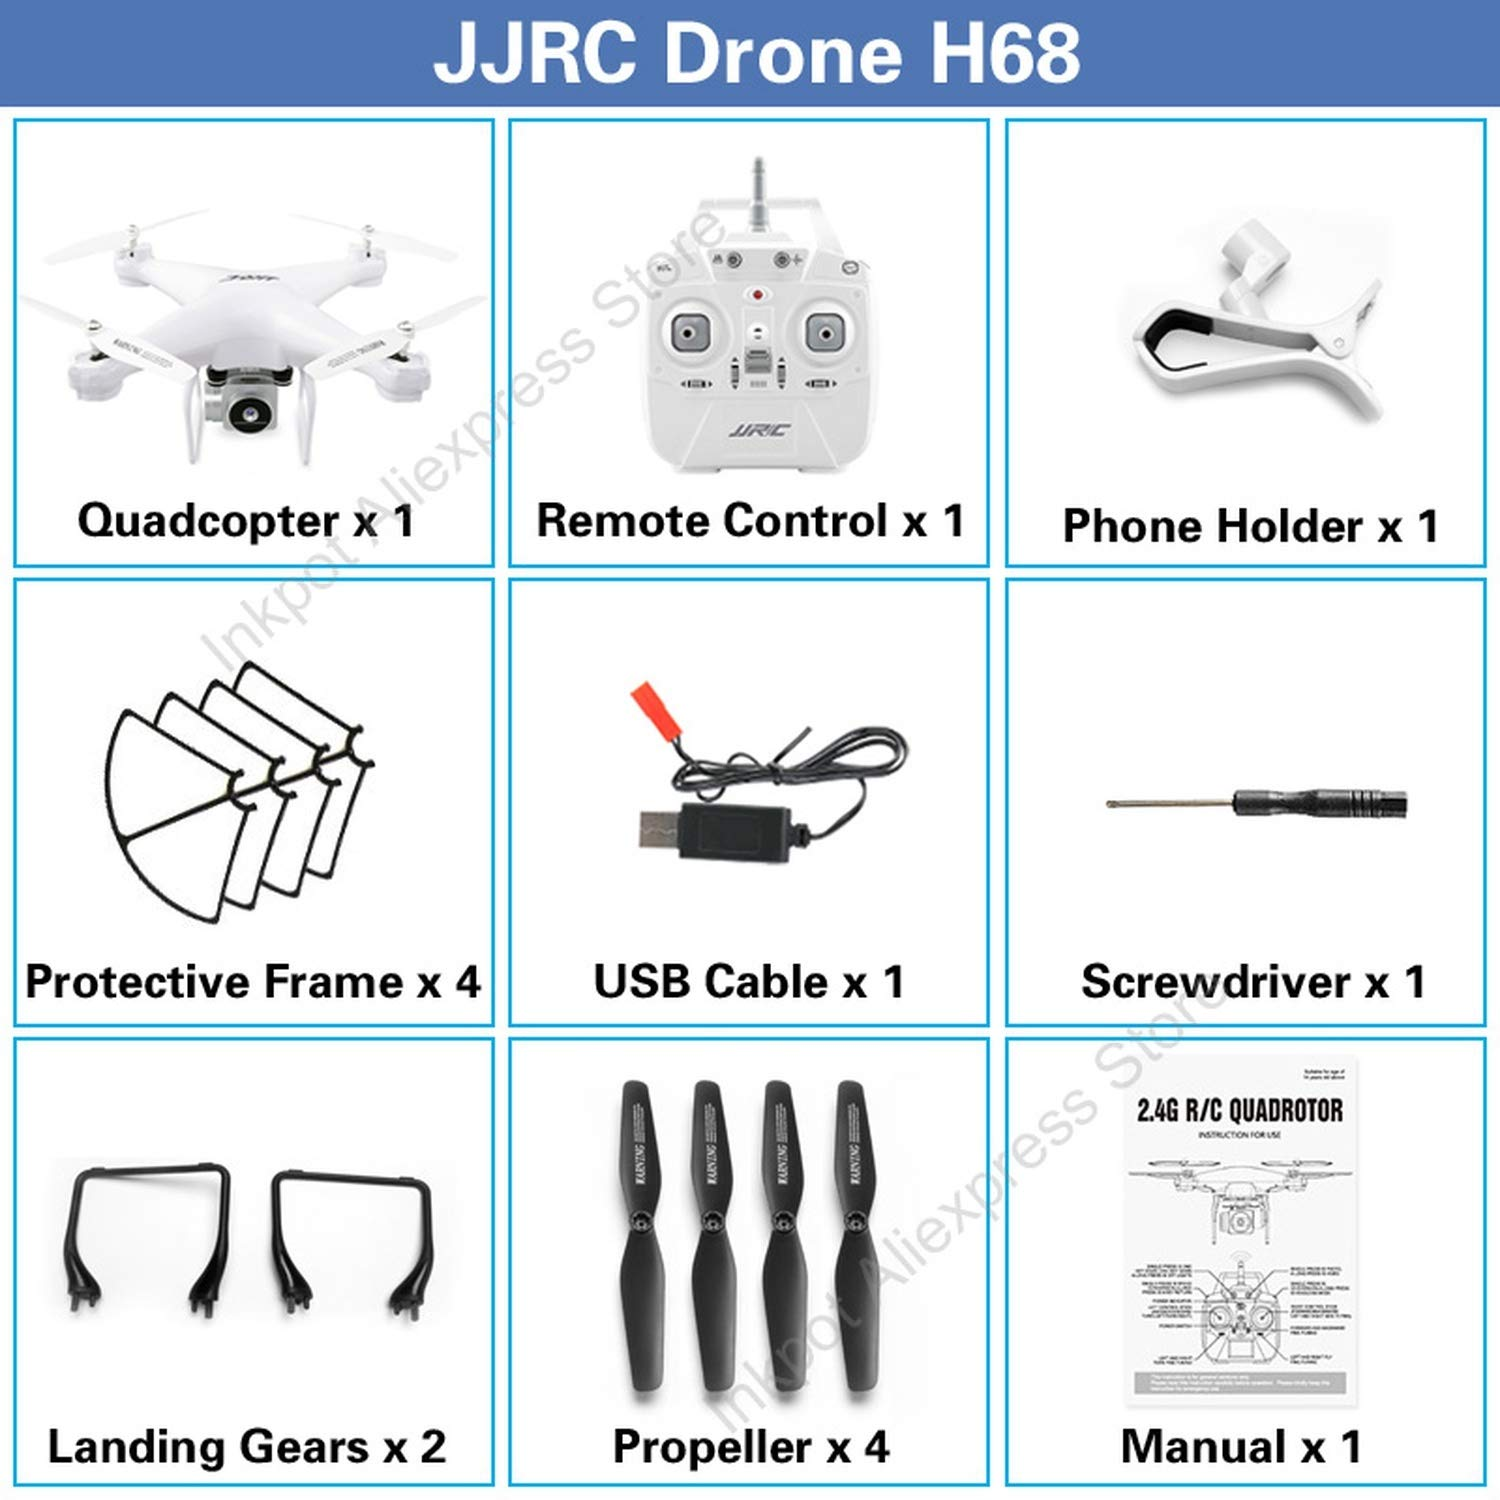 Amazon com: JJR/C H68 Drone with Camera HD 720P Altitude